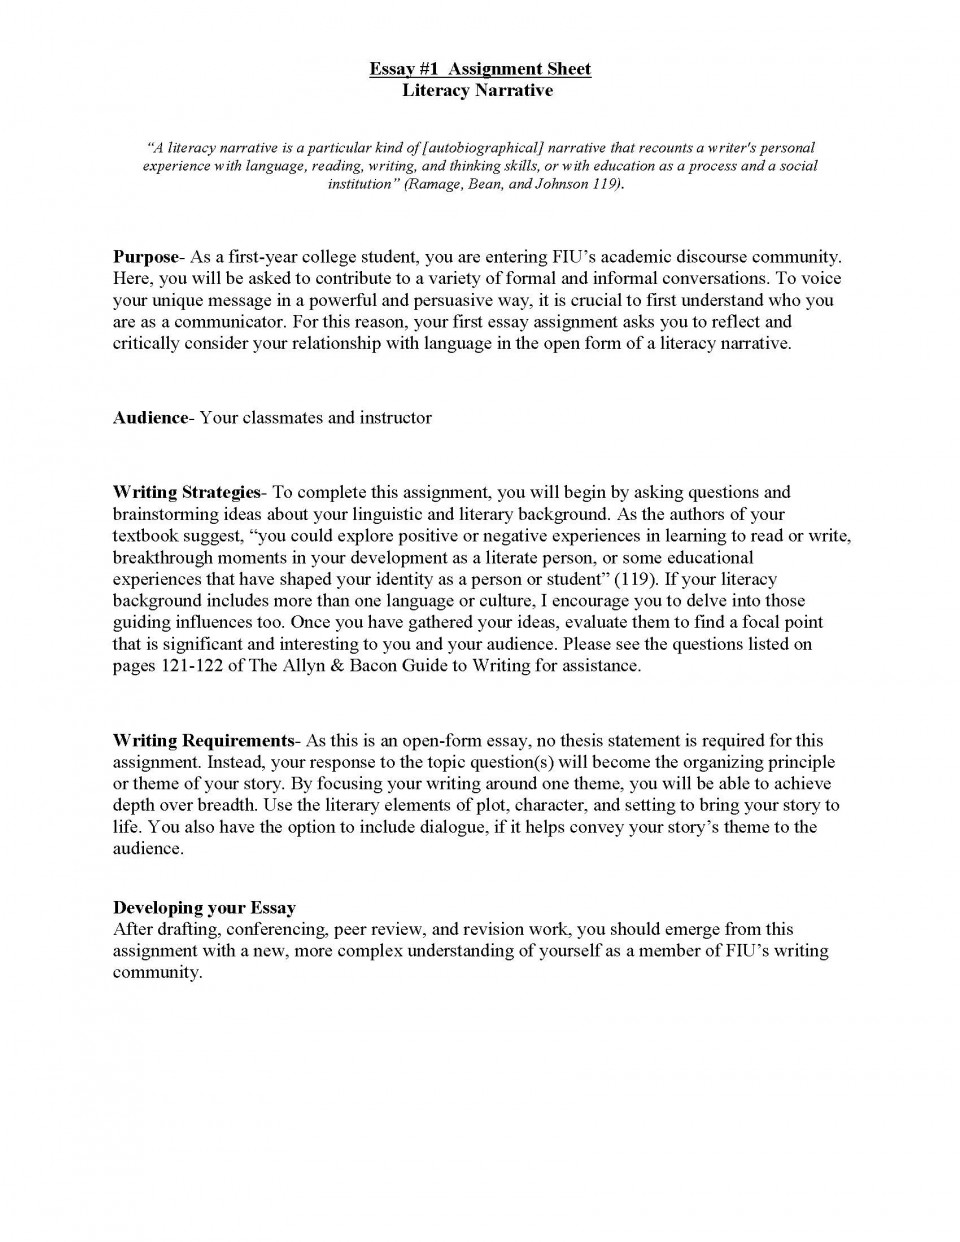 017 Literacy Narrative Unit Assignment Spring 2012 Page 1s Of Essays Essay Rare Examples Writing College For Students High School 960